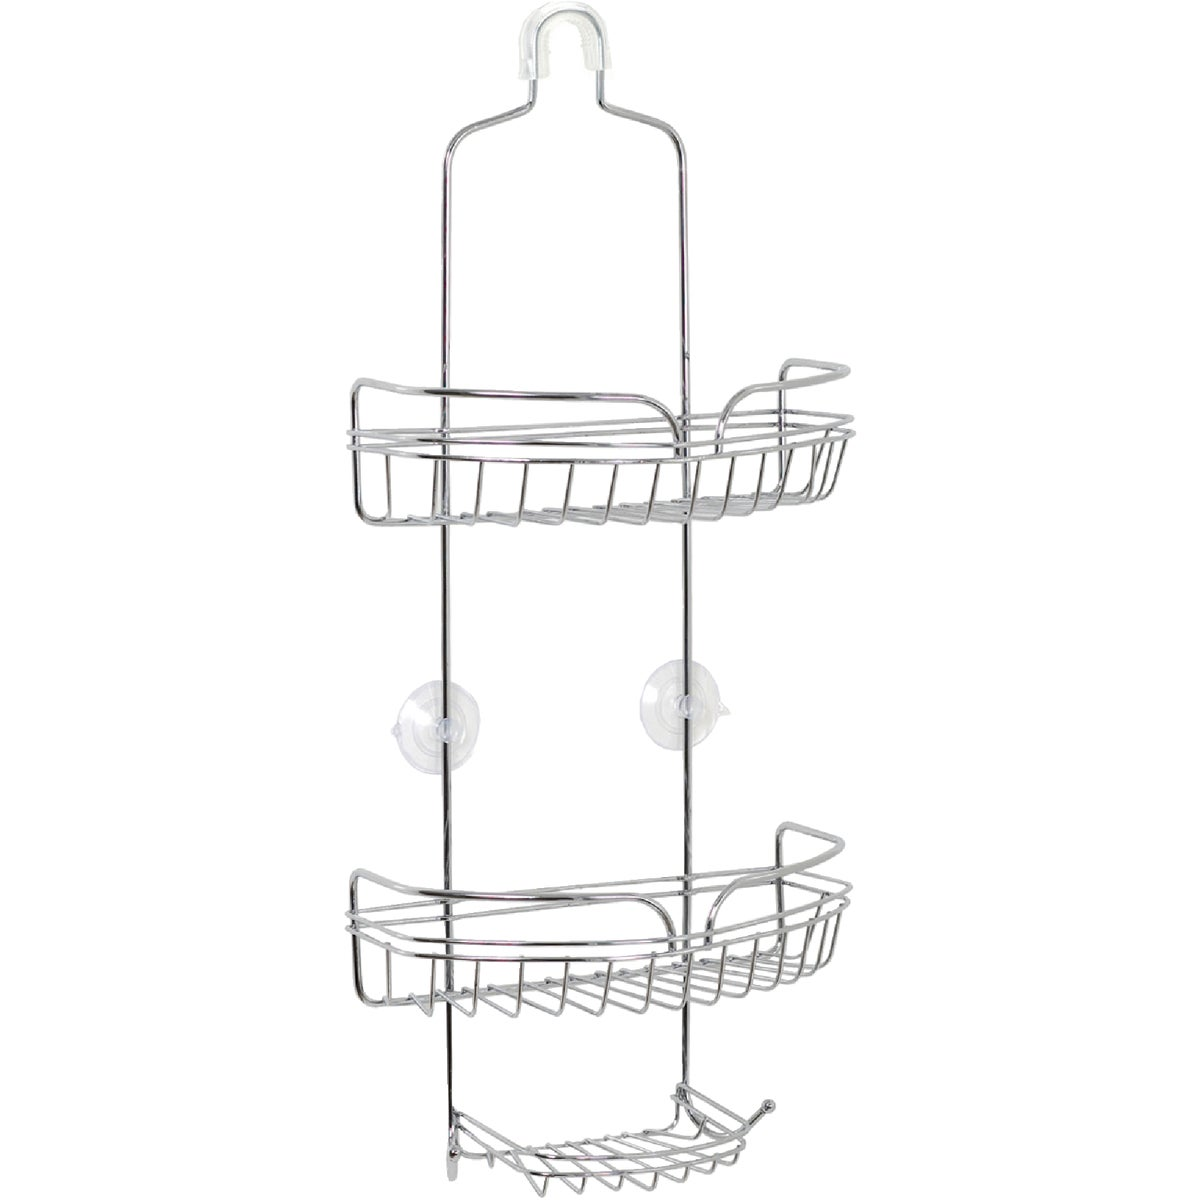 CHROME OVER-SHOWER CADDY - 7529S by Zenith Prod Corp